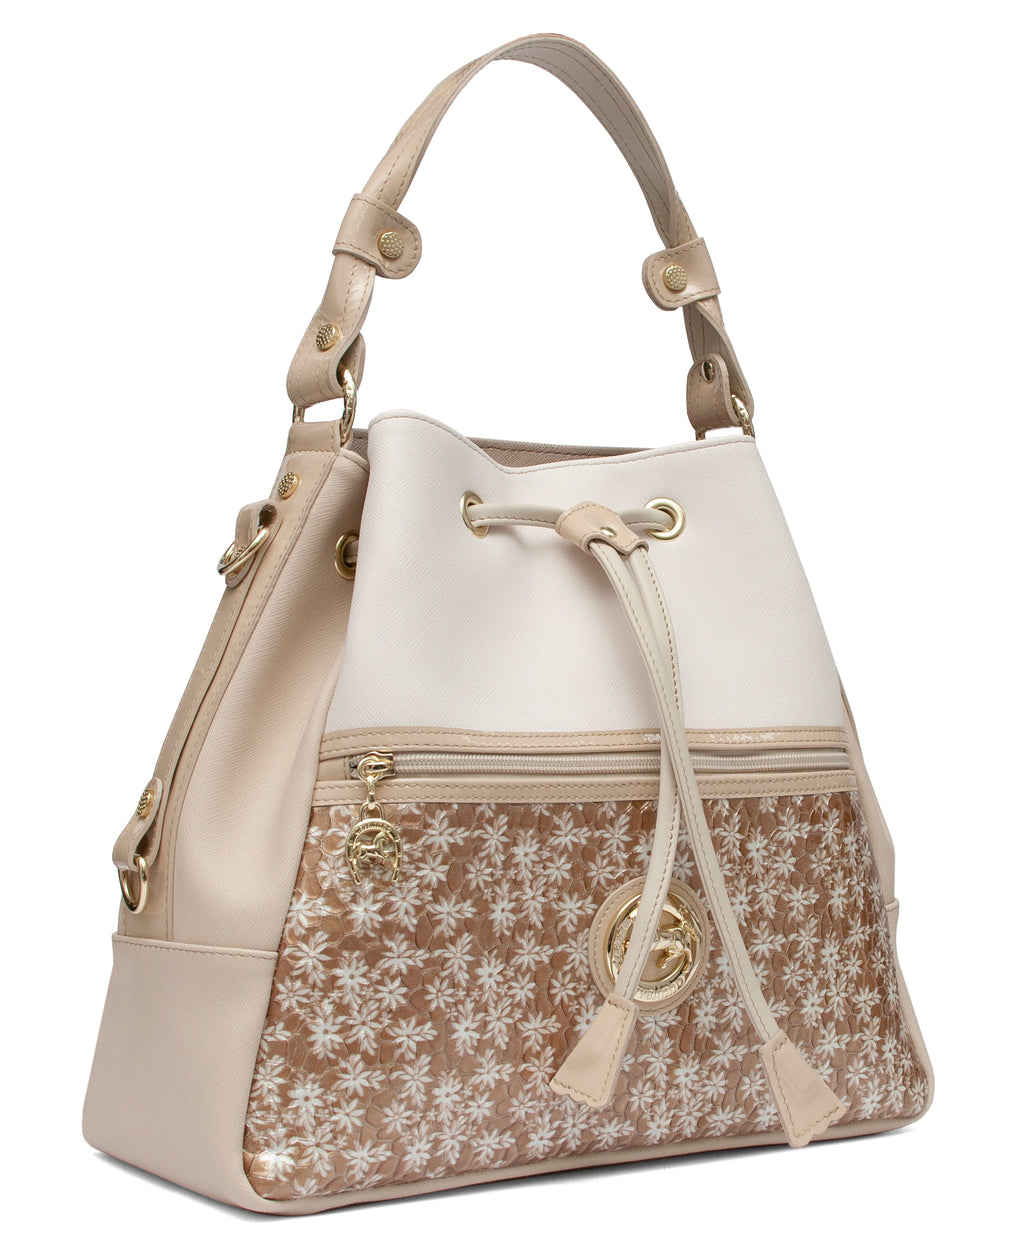 Serenity Beige Bucket Bag